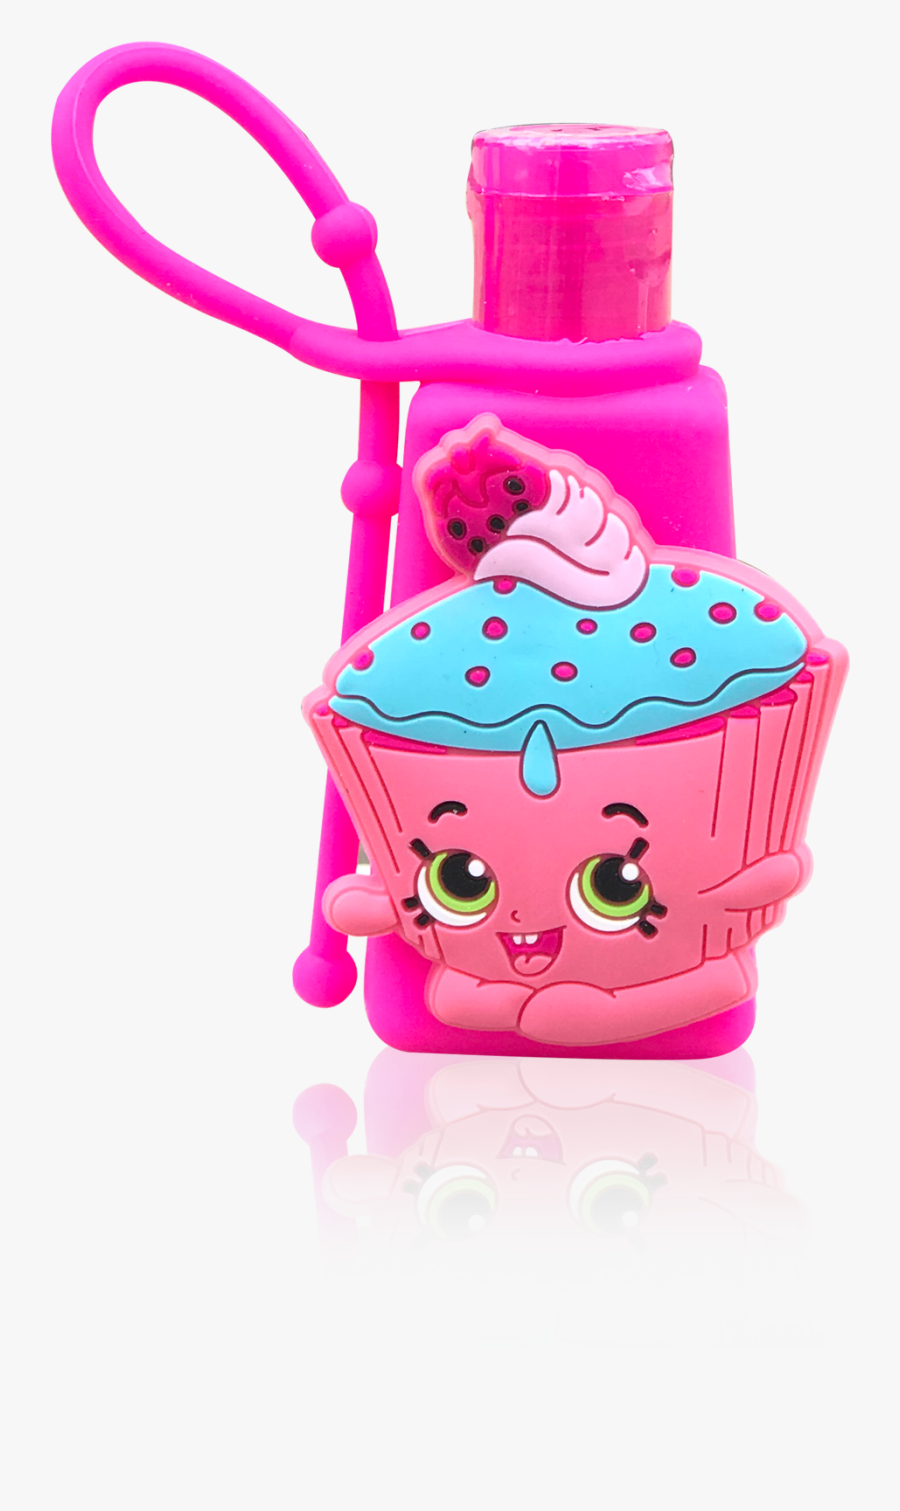 Load Image Into Gallery Viewer, Shopkins Cupcake Chic - Cupcake Chic Shopkins, Transparent Clipart